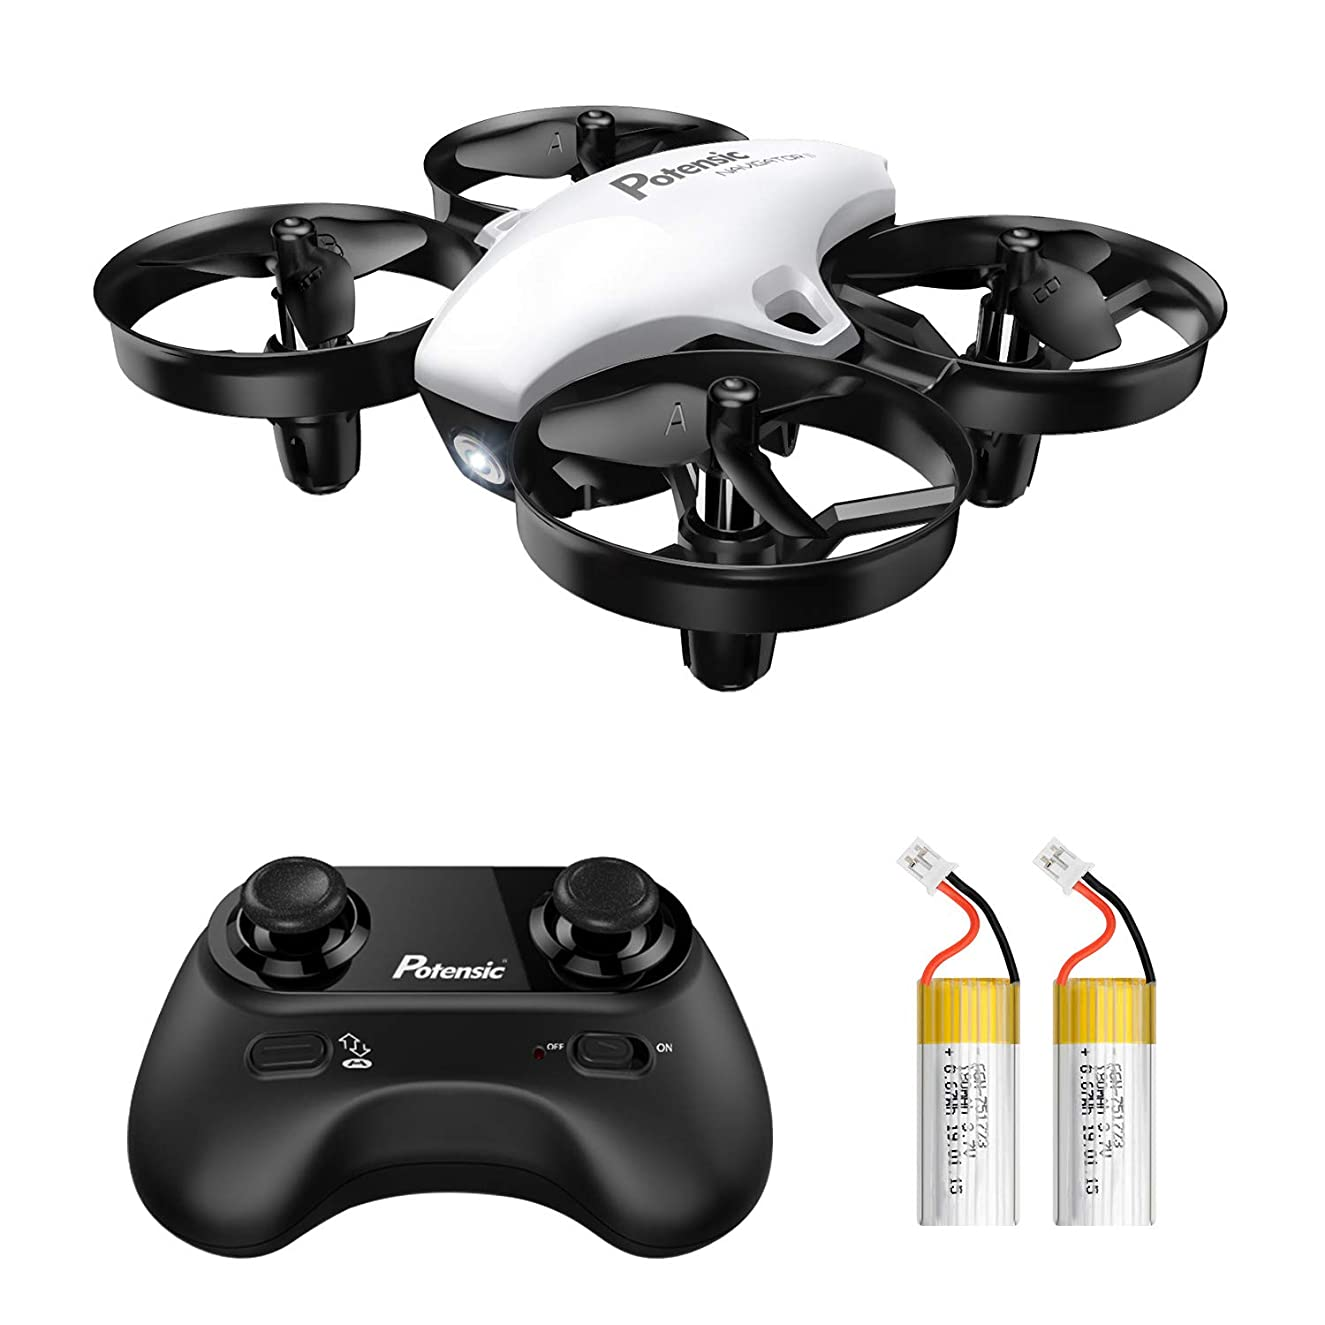 Potensic Upgraded A20 Mini Drone Easy to Fly Even to Kids and Beginners, RC Helicopter Quadcopter with Auto Hovering, Headless Mode and Extra Batteries